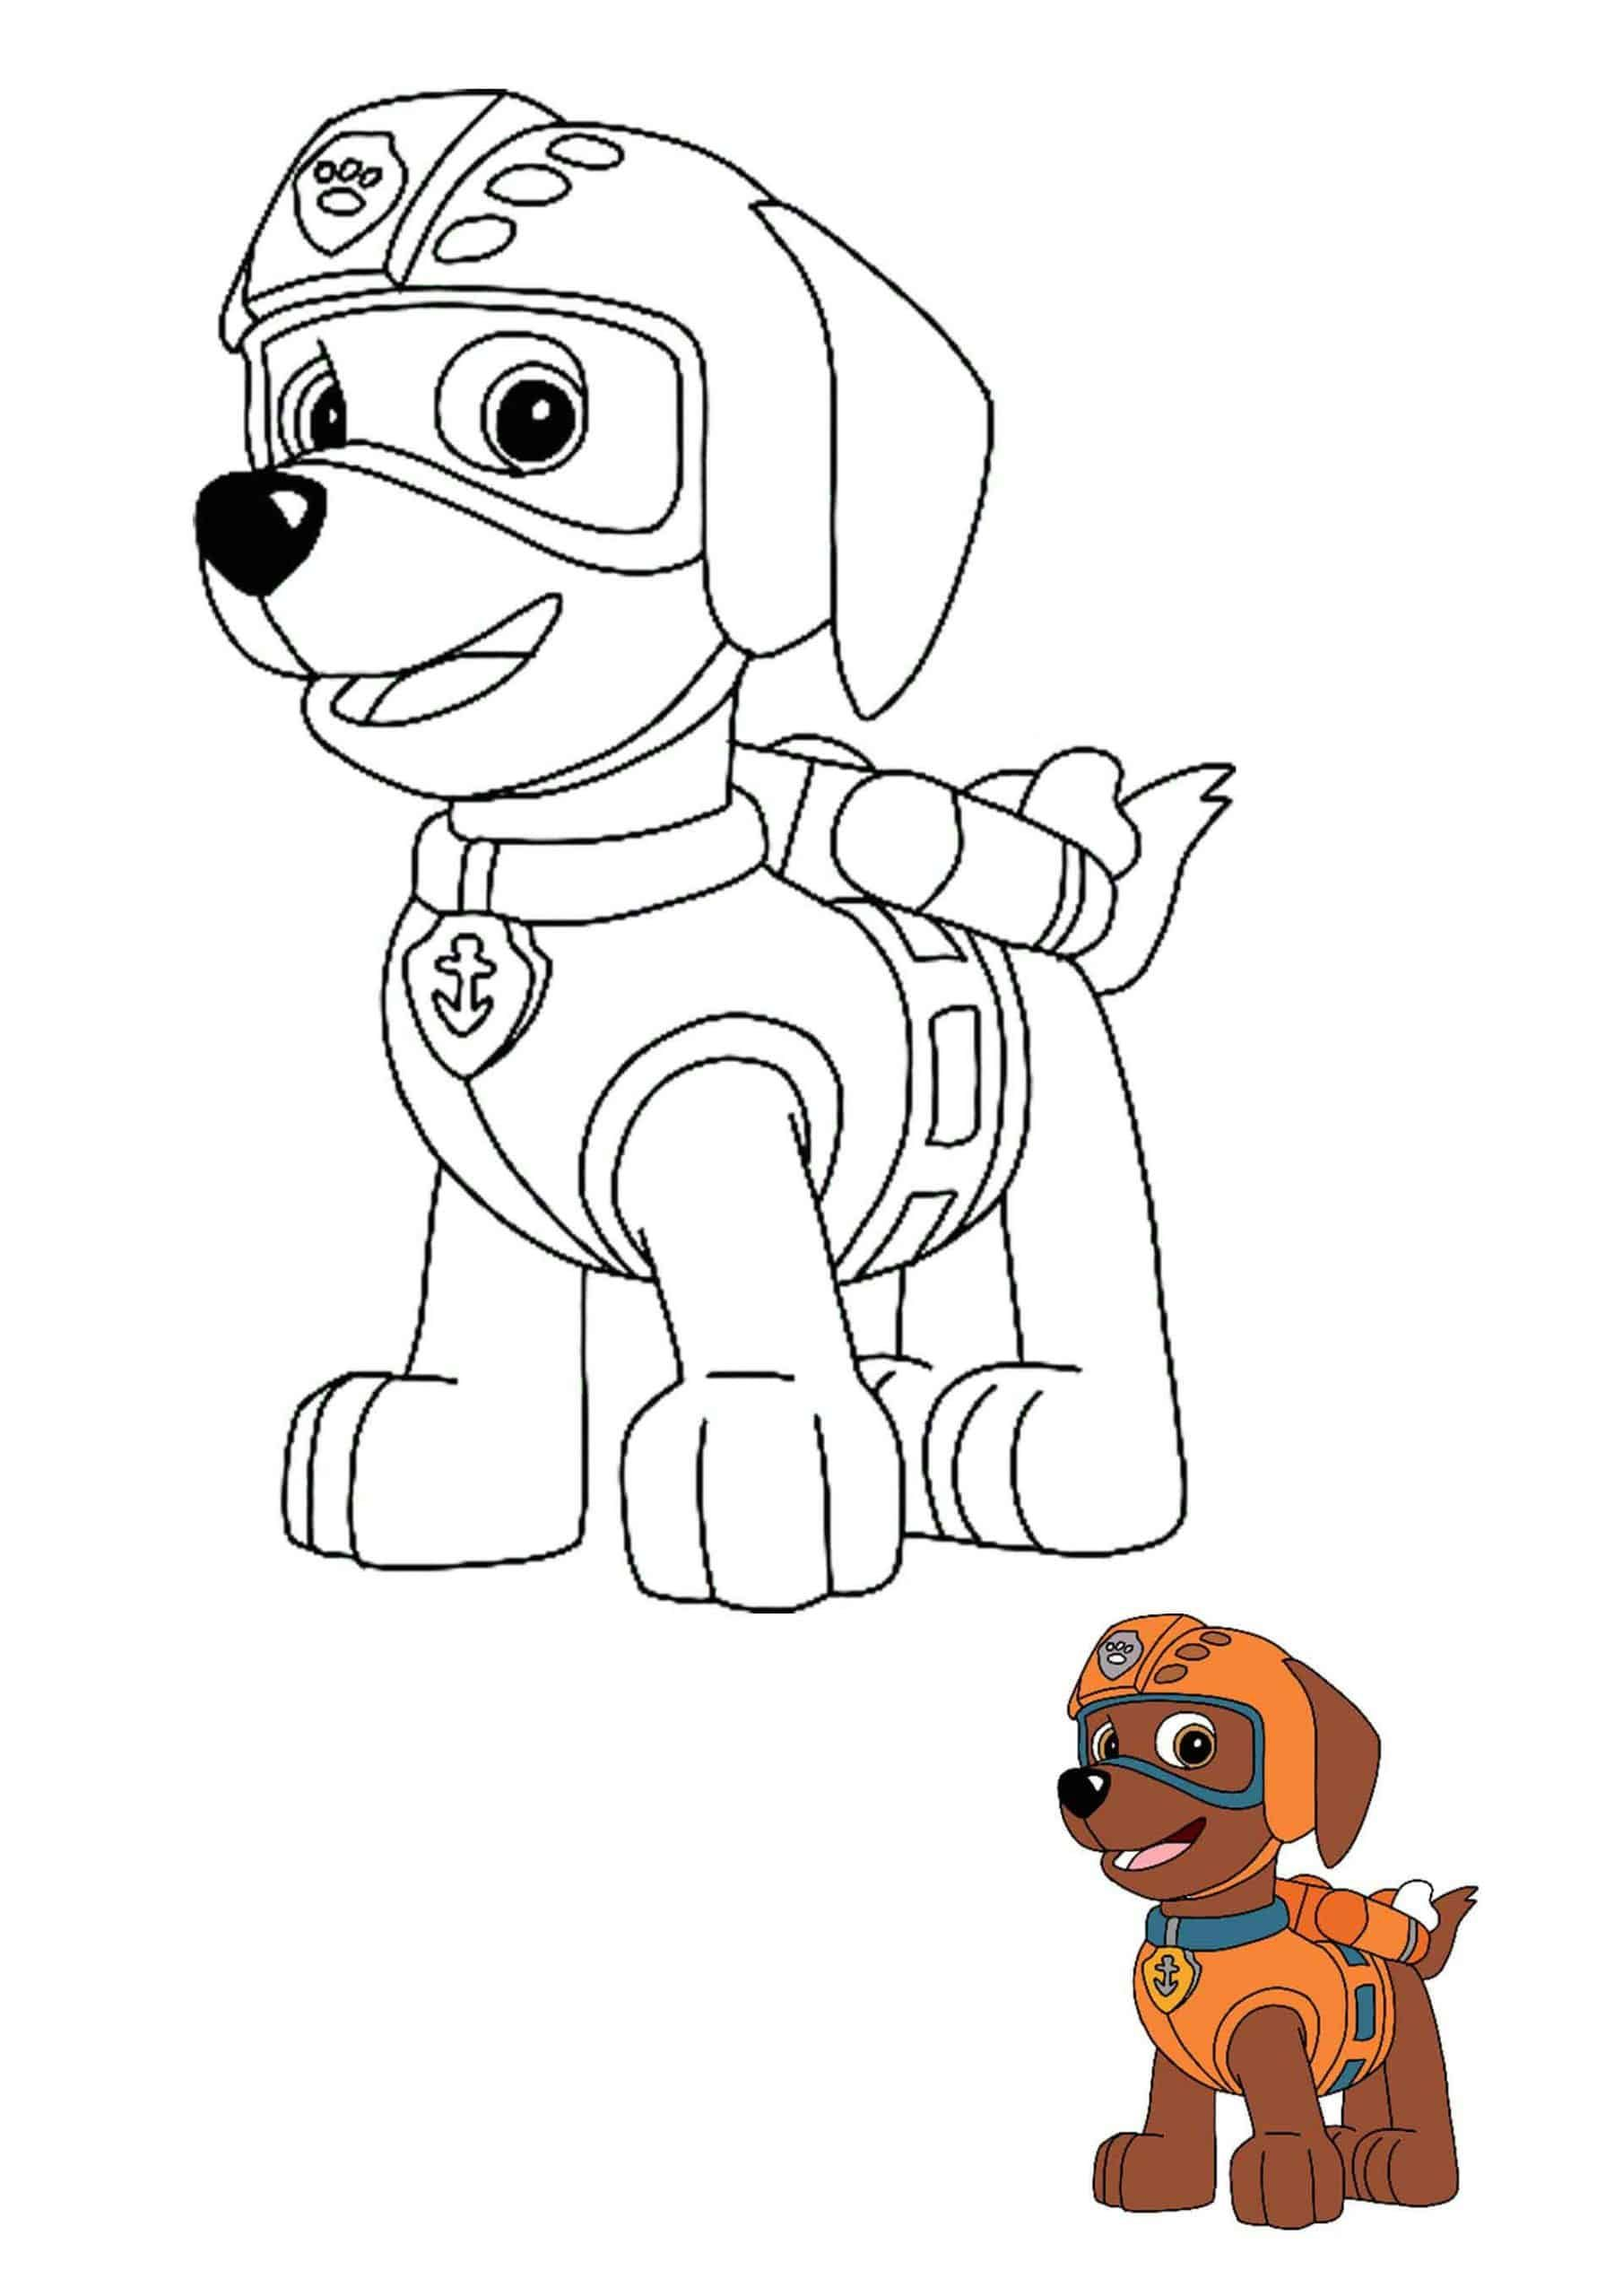 Paw Patrol Zuma Coloring Pages Paw Patrol Coloring Zuma Paw Patrol Paw Patrol Printables